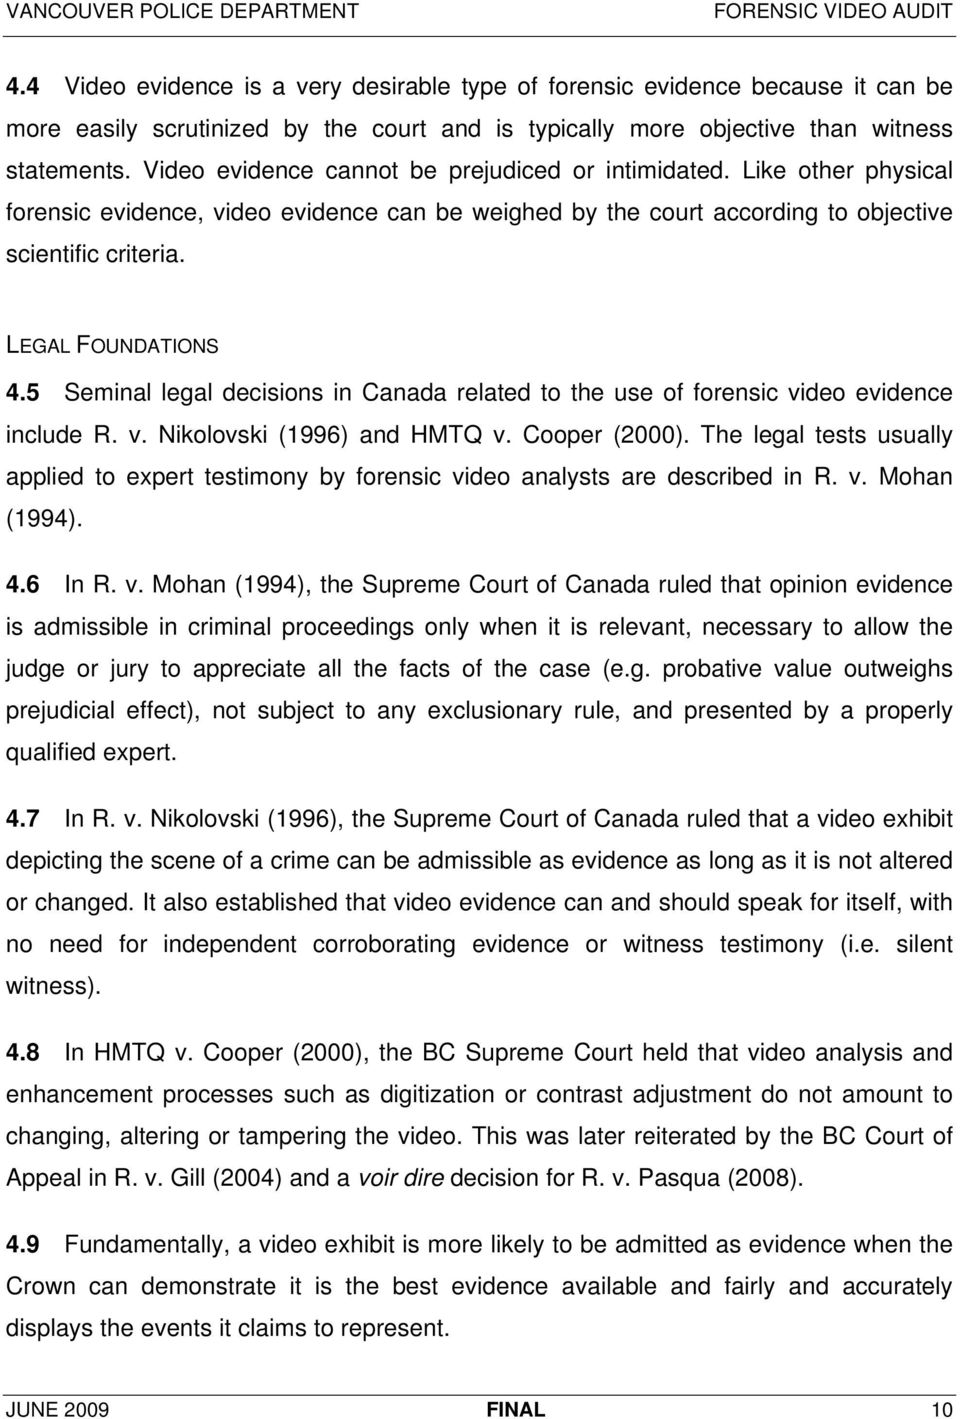 5 Seminal legal decisions in Canada related to the use of forensic video evidence include R. v. Nikolovski (1996) and HMTQ v. Cooper (2000).